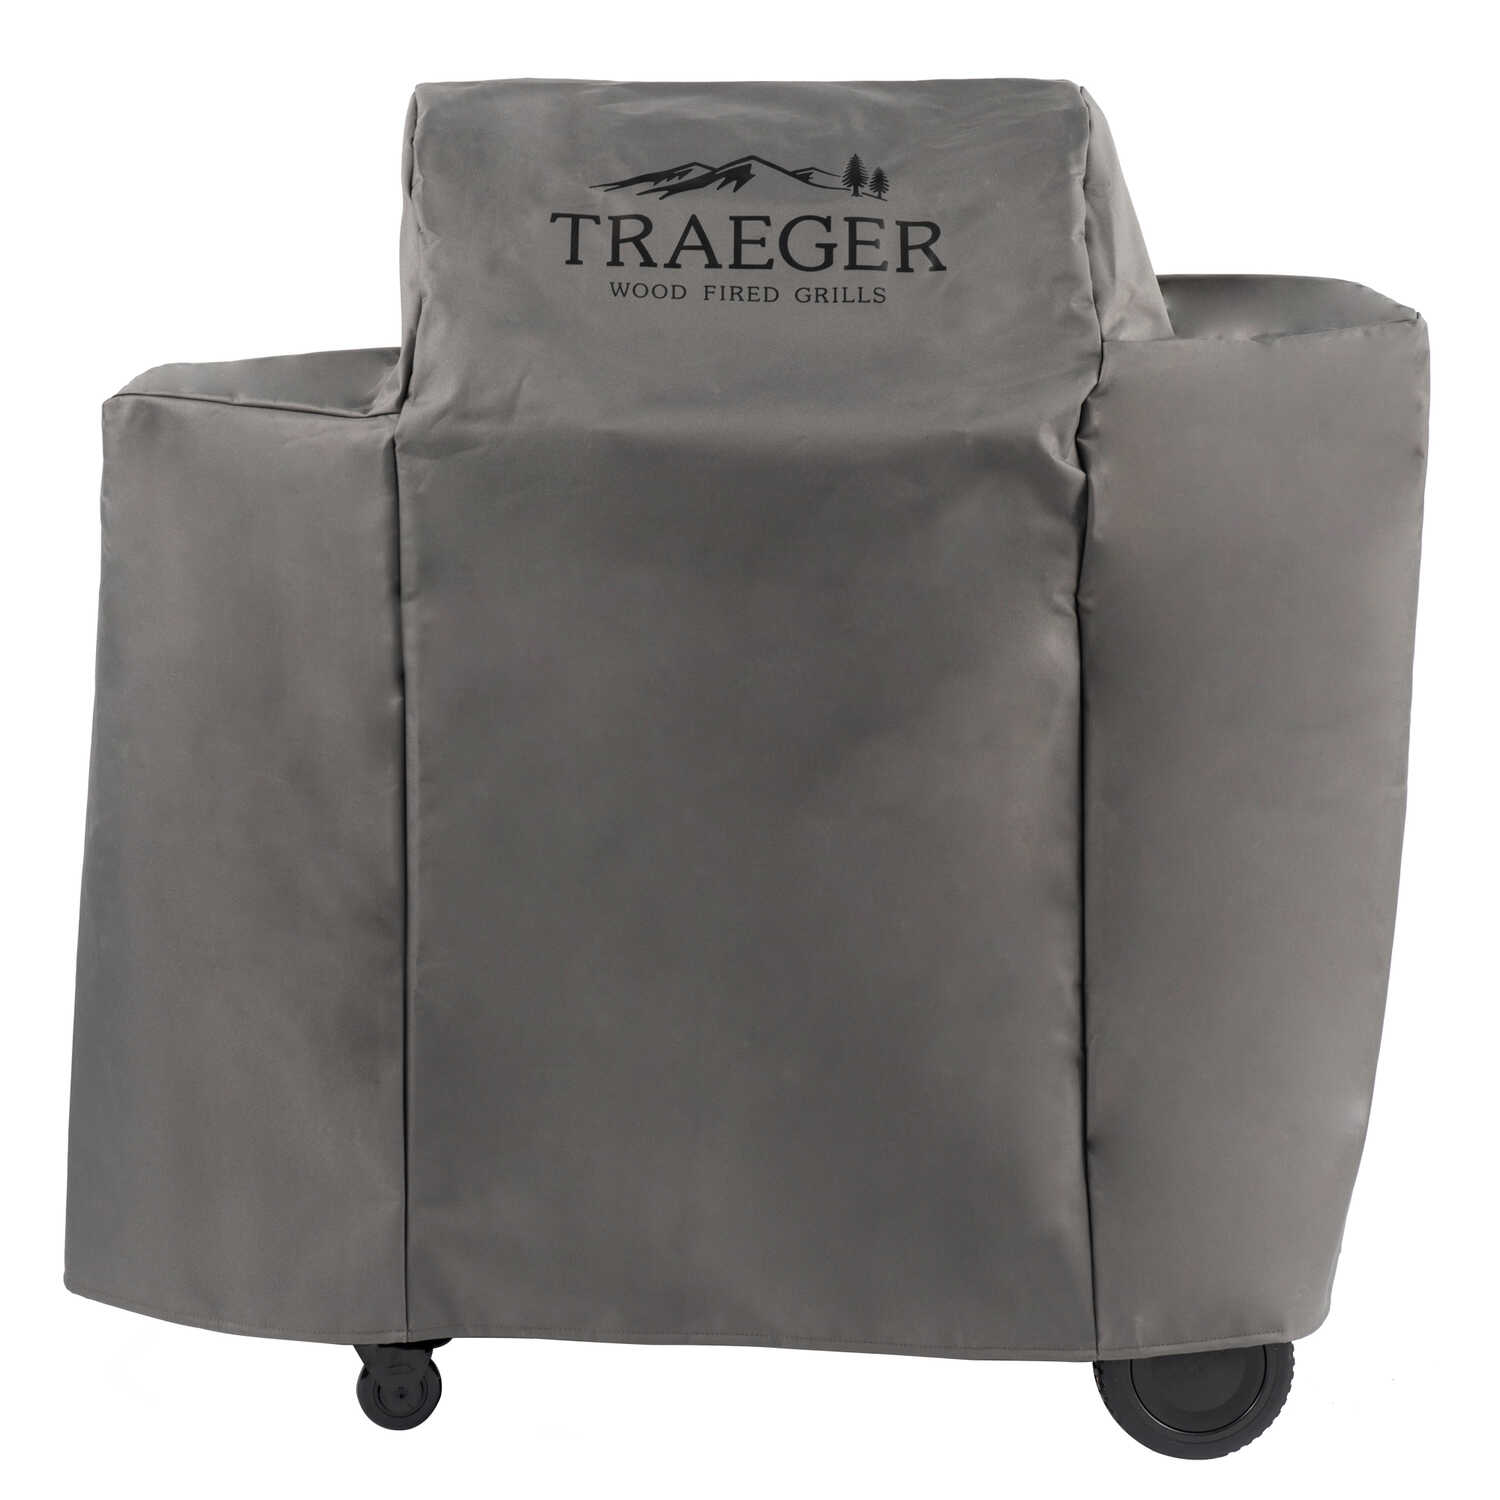 Traeger  Gray  Grill Cover  46 in. W x 24.5 in. D x 43.25 in. H For Ironwood 650-TFB65BLE